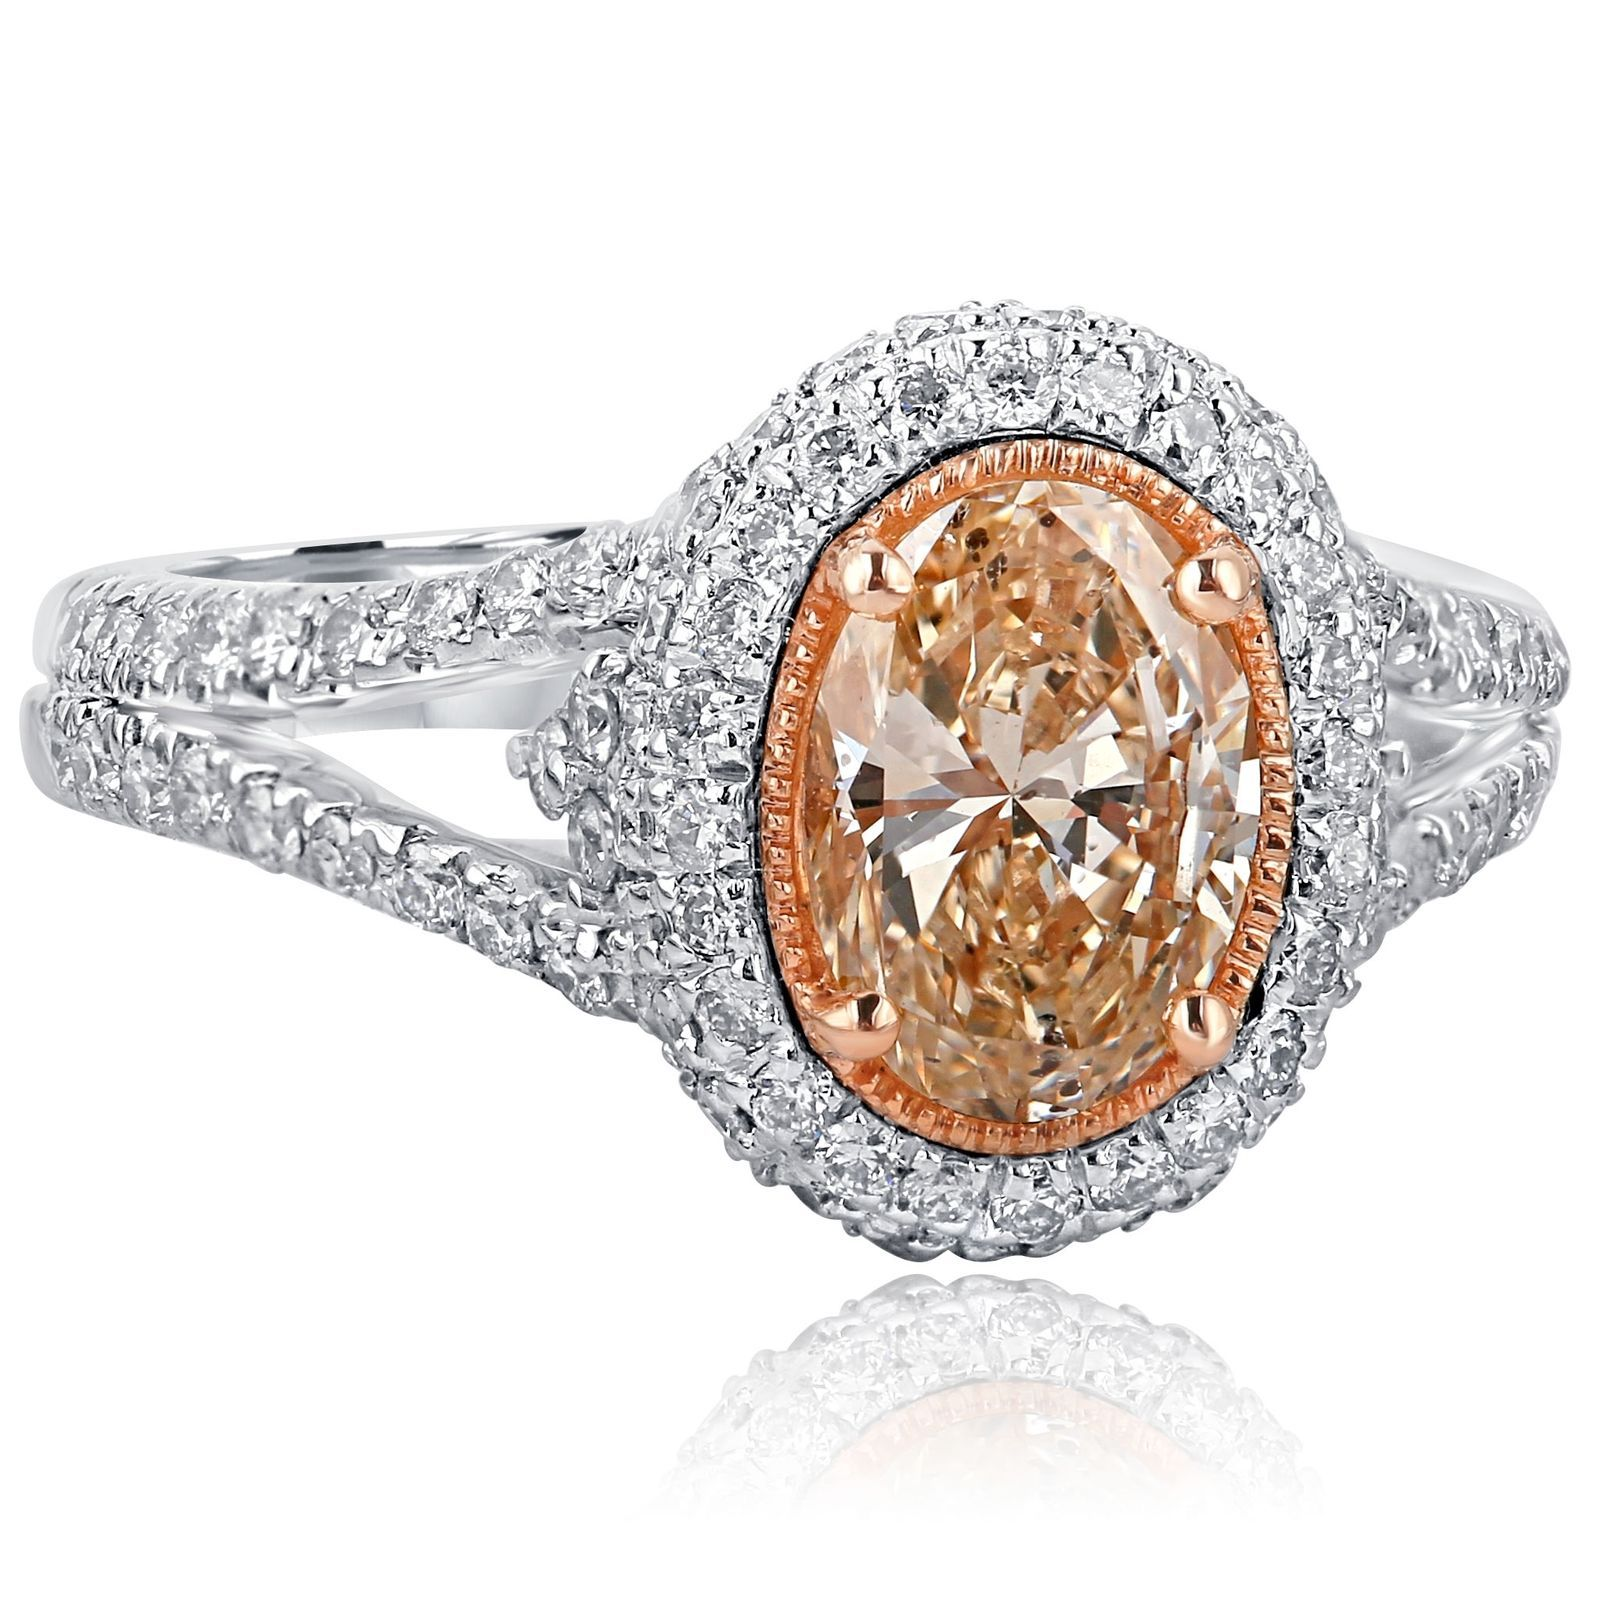 Primary image for 2.01 TCW Oval Cut Brownish Yellow Diamond Engagement Halo Ring 18k White Gold Sp